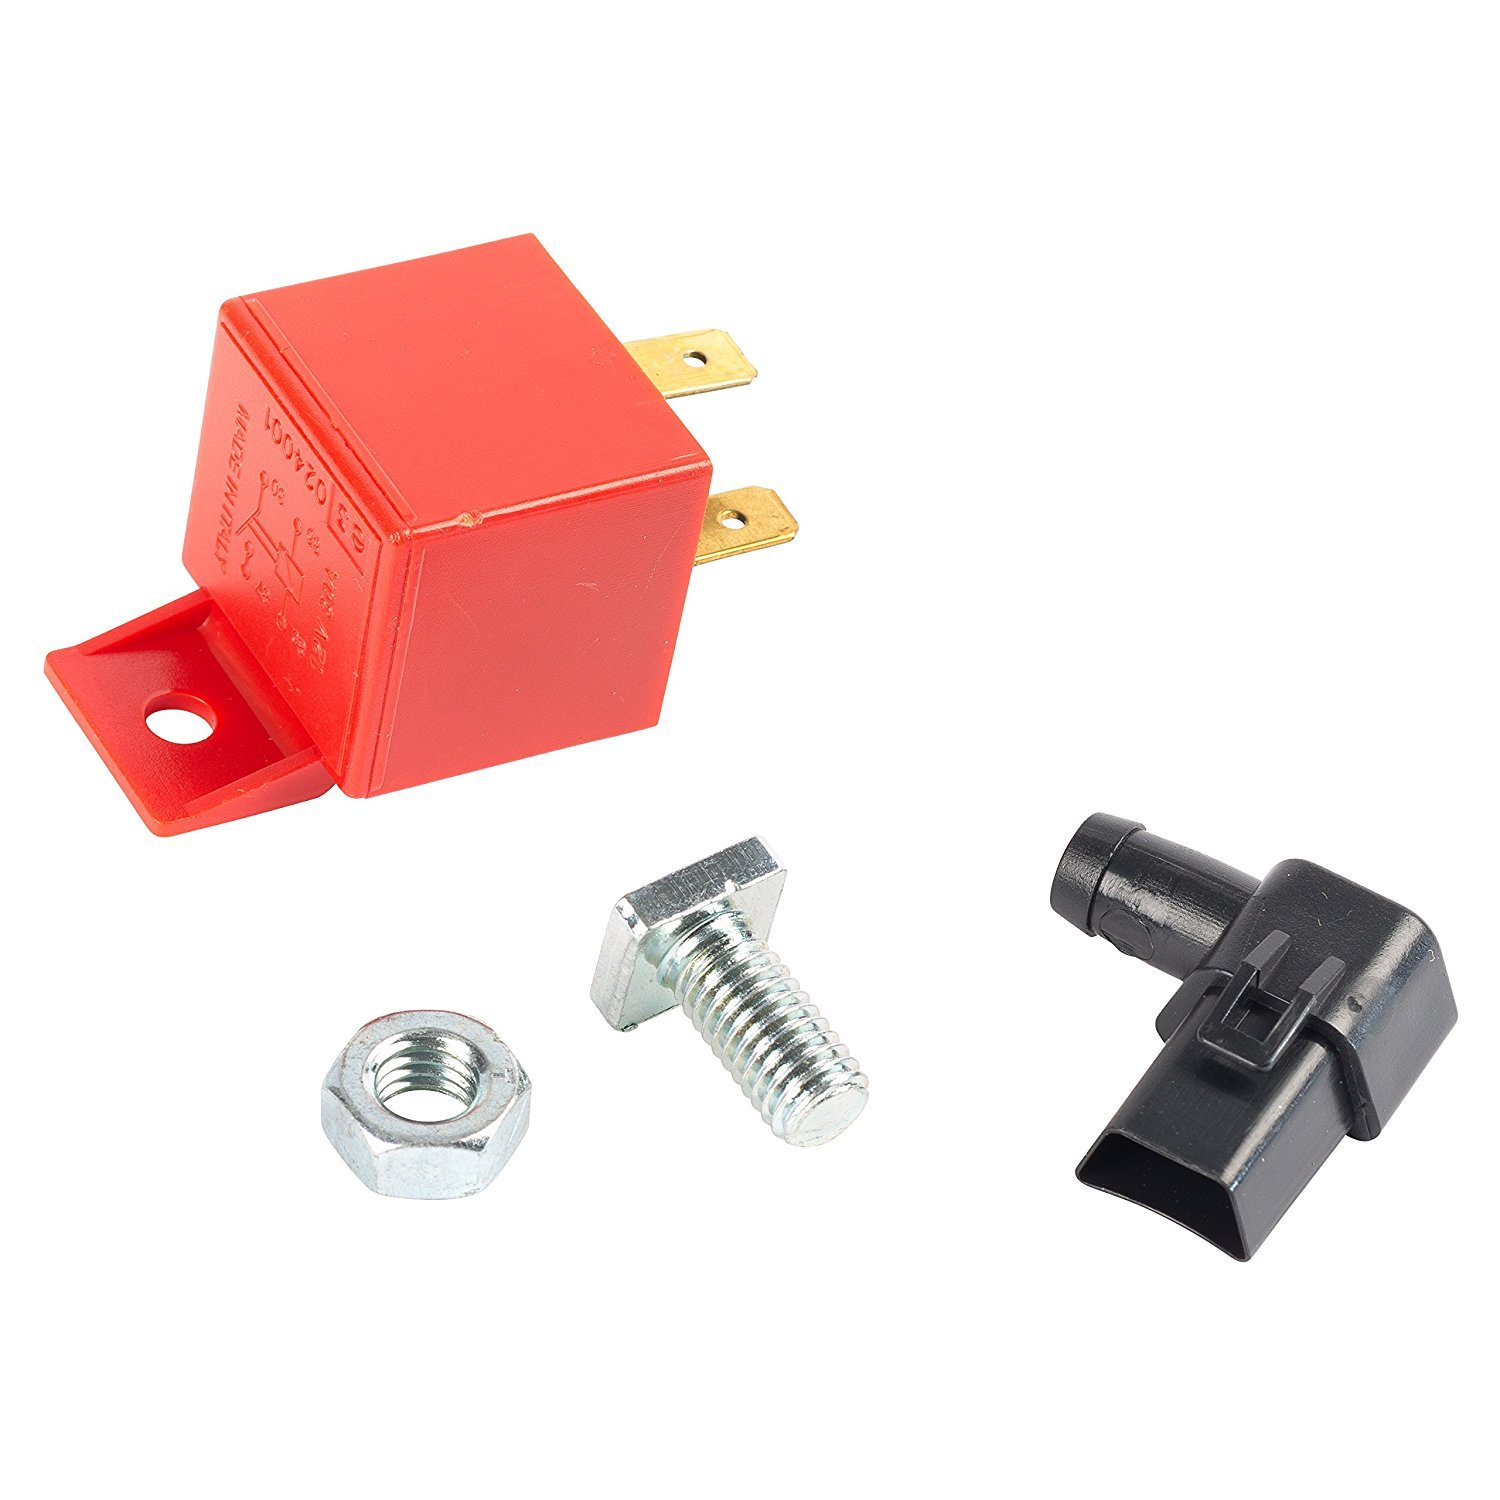 Stebel 11690039 Nautilus Compact Mini Air Horn Chrome Am I Wiring This Relay Wrong Dsmtuners Automotive